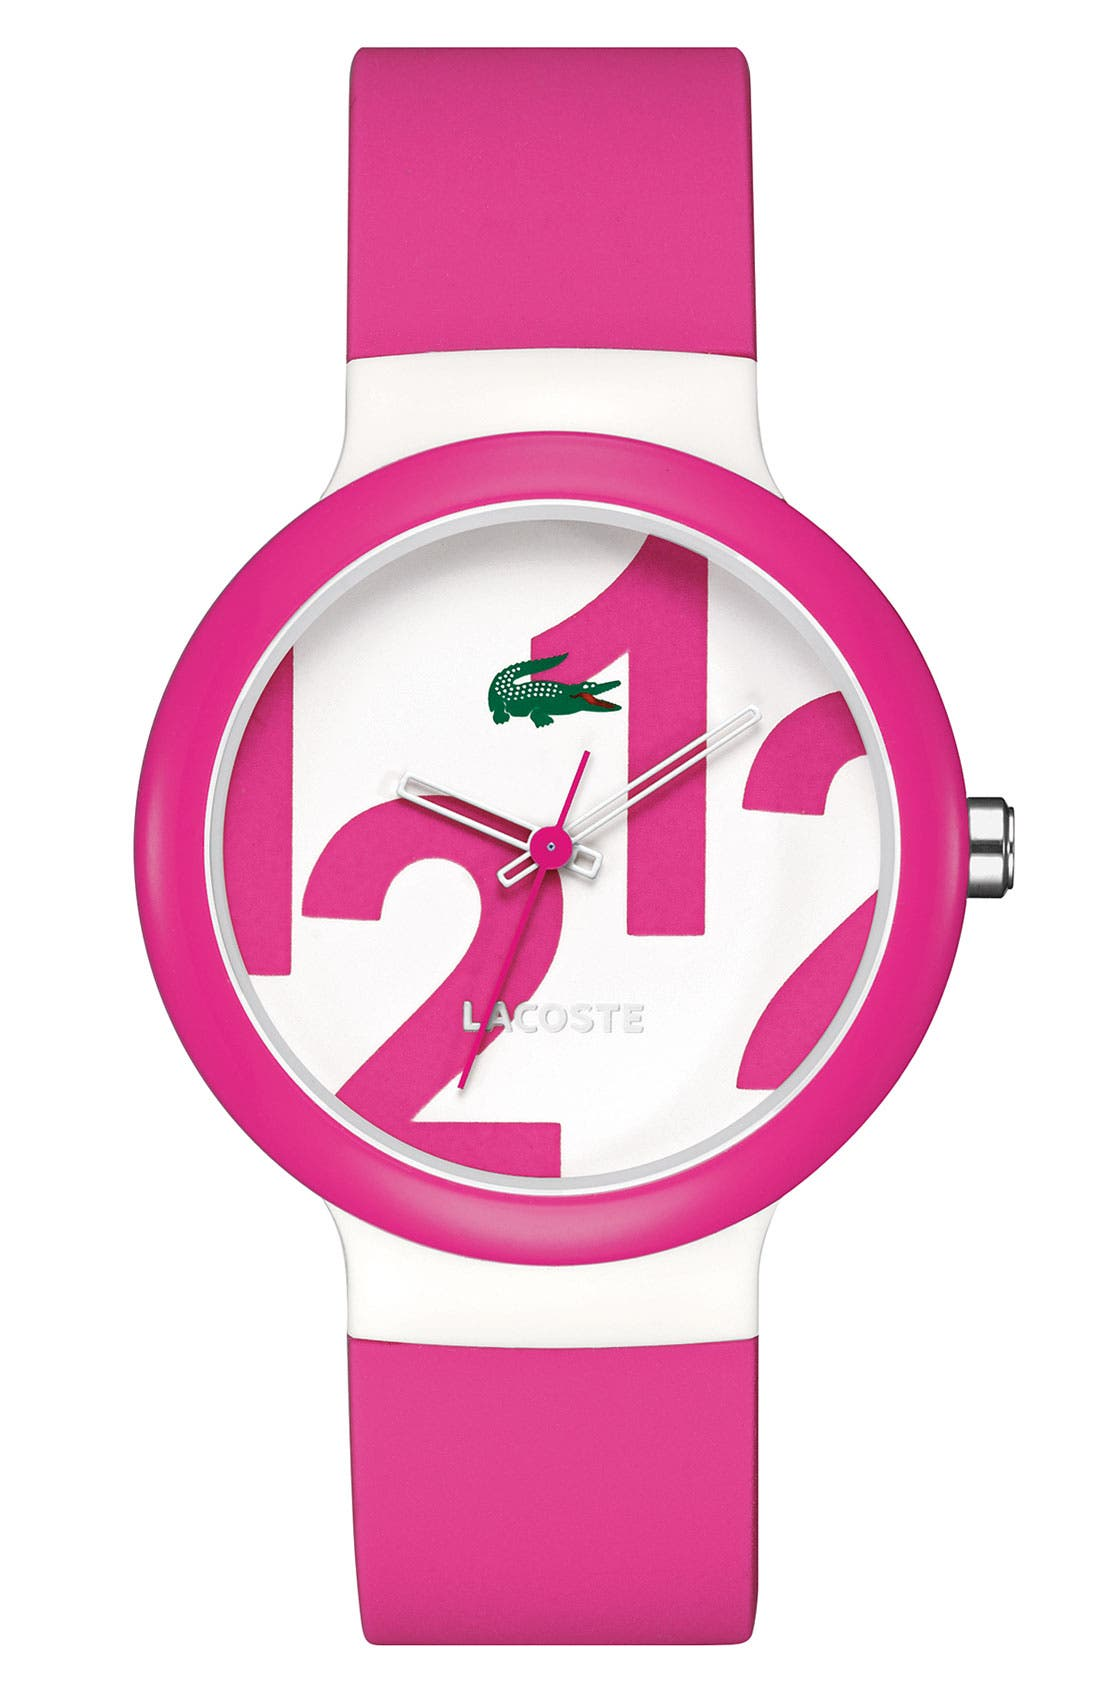 Alternate Image 1 Selected - Lacoste 'Goa' Scramble Dial Silicone Strap Watch